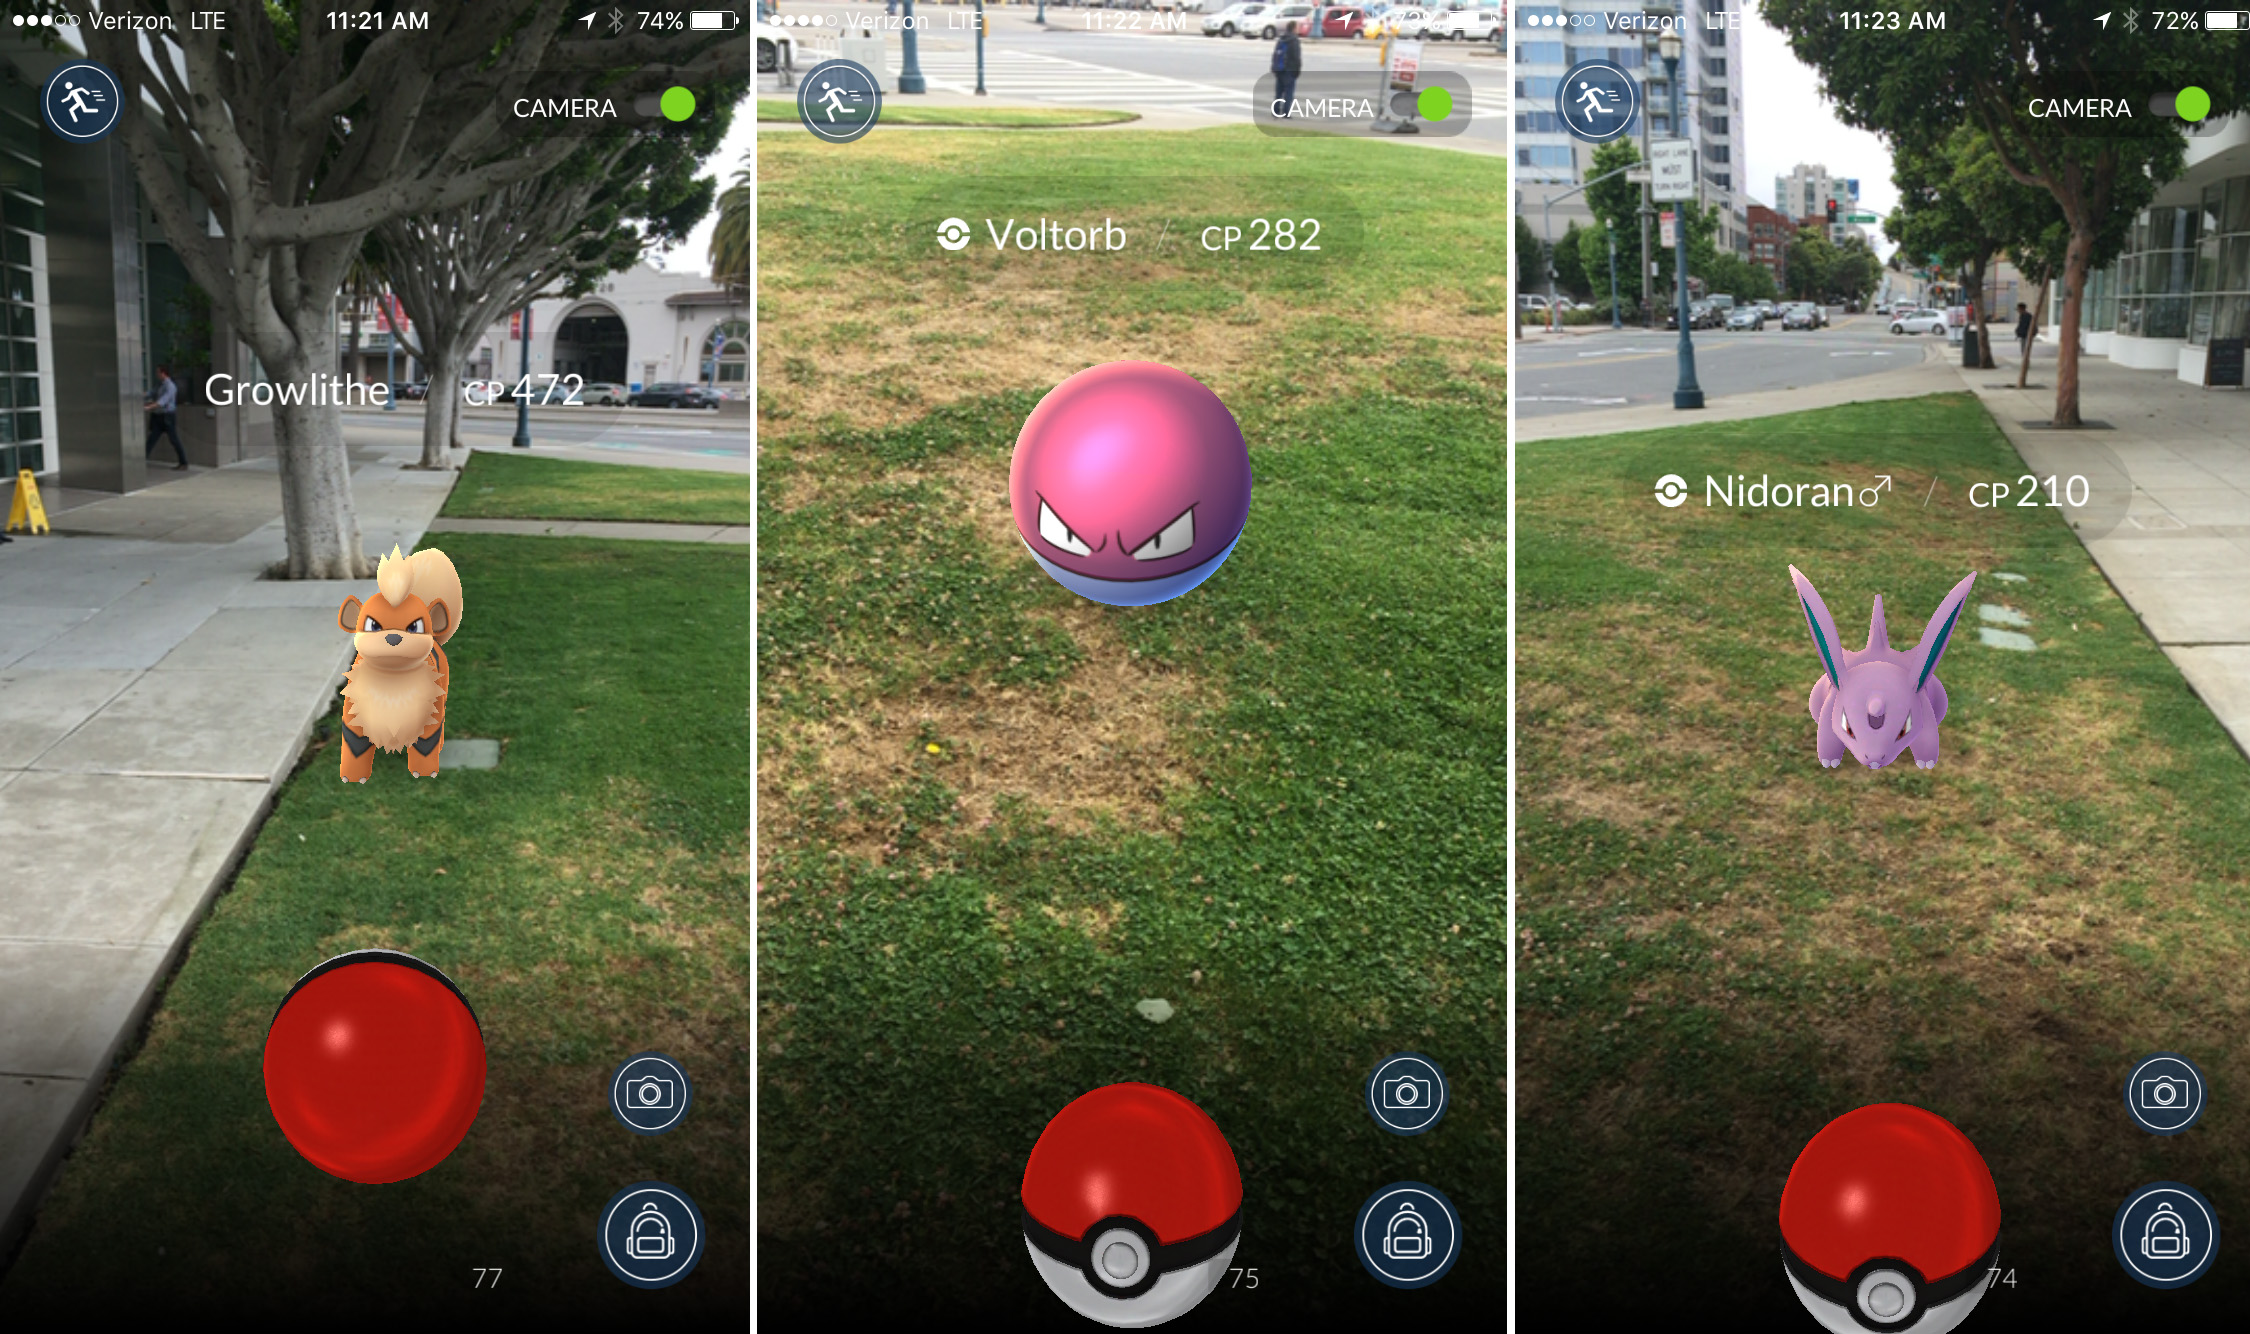 Apple's Latest Money Maker: Pokémon Go